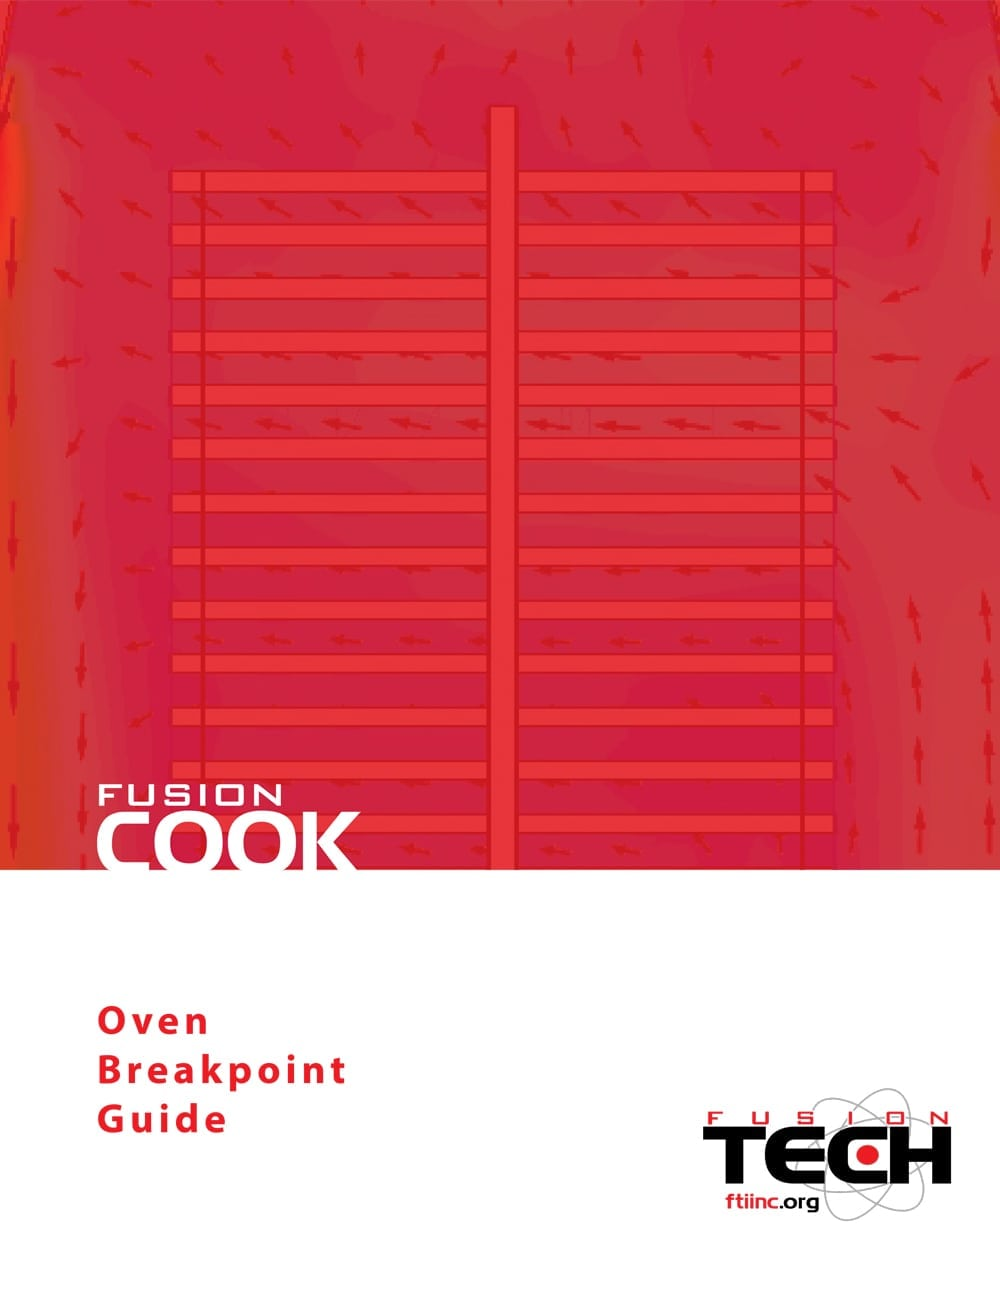 Oven Breakpoint Guide